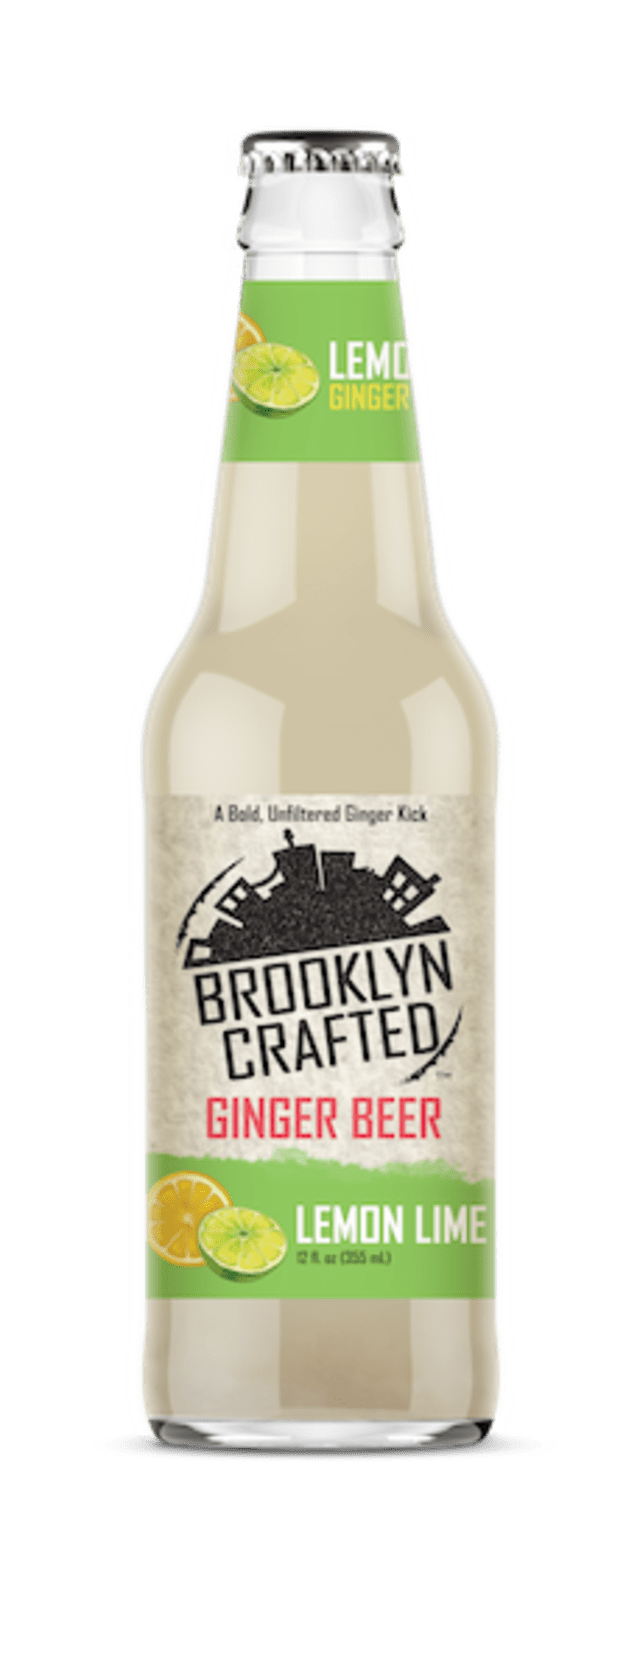 Lemon Lime is one of several flavors of Brooklyn Crafted ginger beer. Courtesy Brooklyn Crafted.